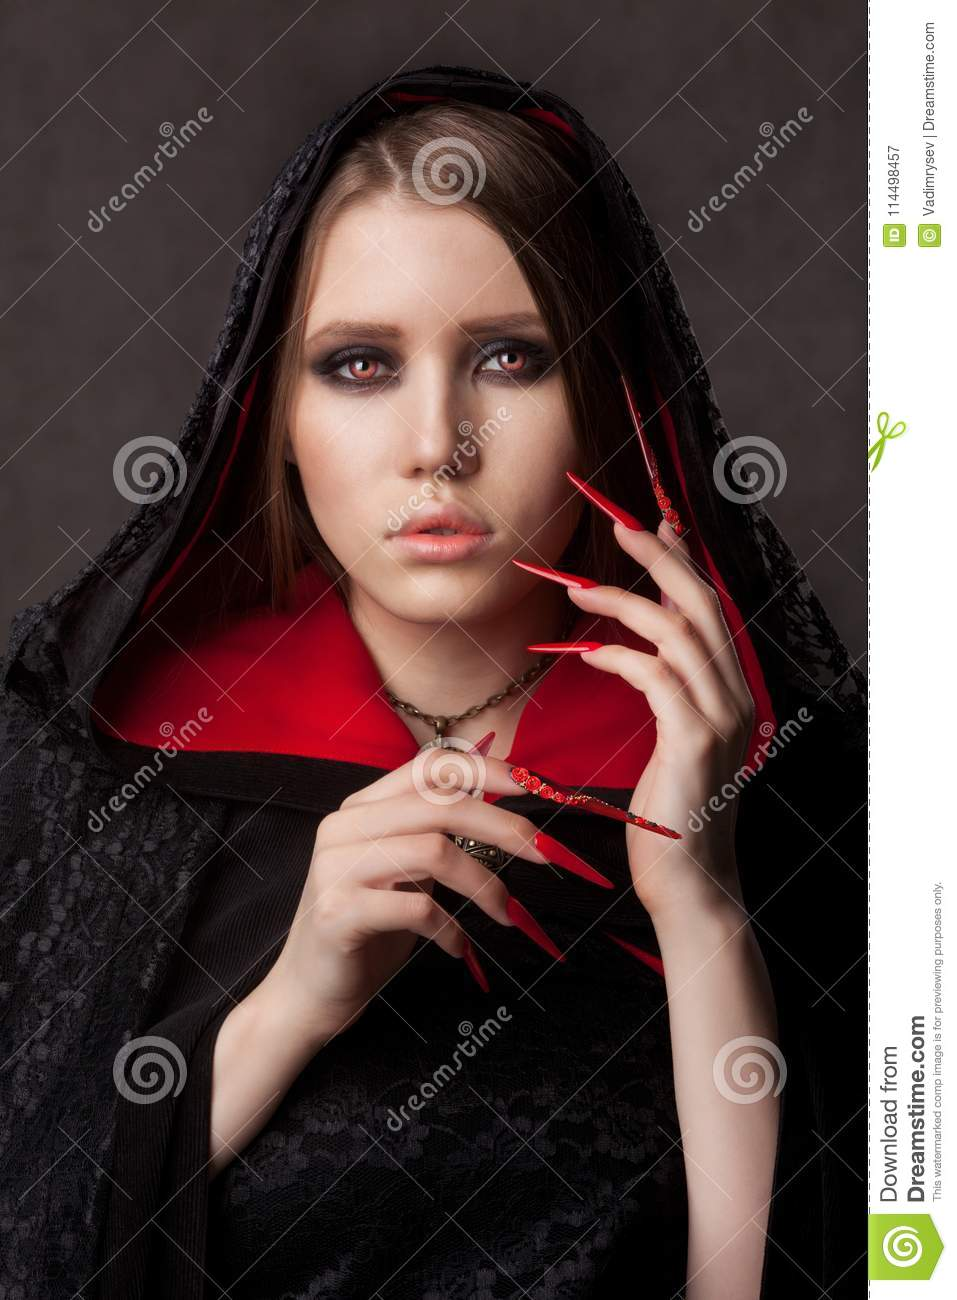 Download Vintage Style Portrait Of Young Beautiful Vampire Woman With Gothic Halloween Makeup Stock Image